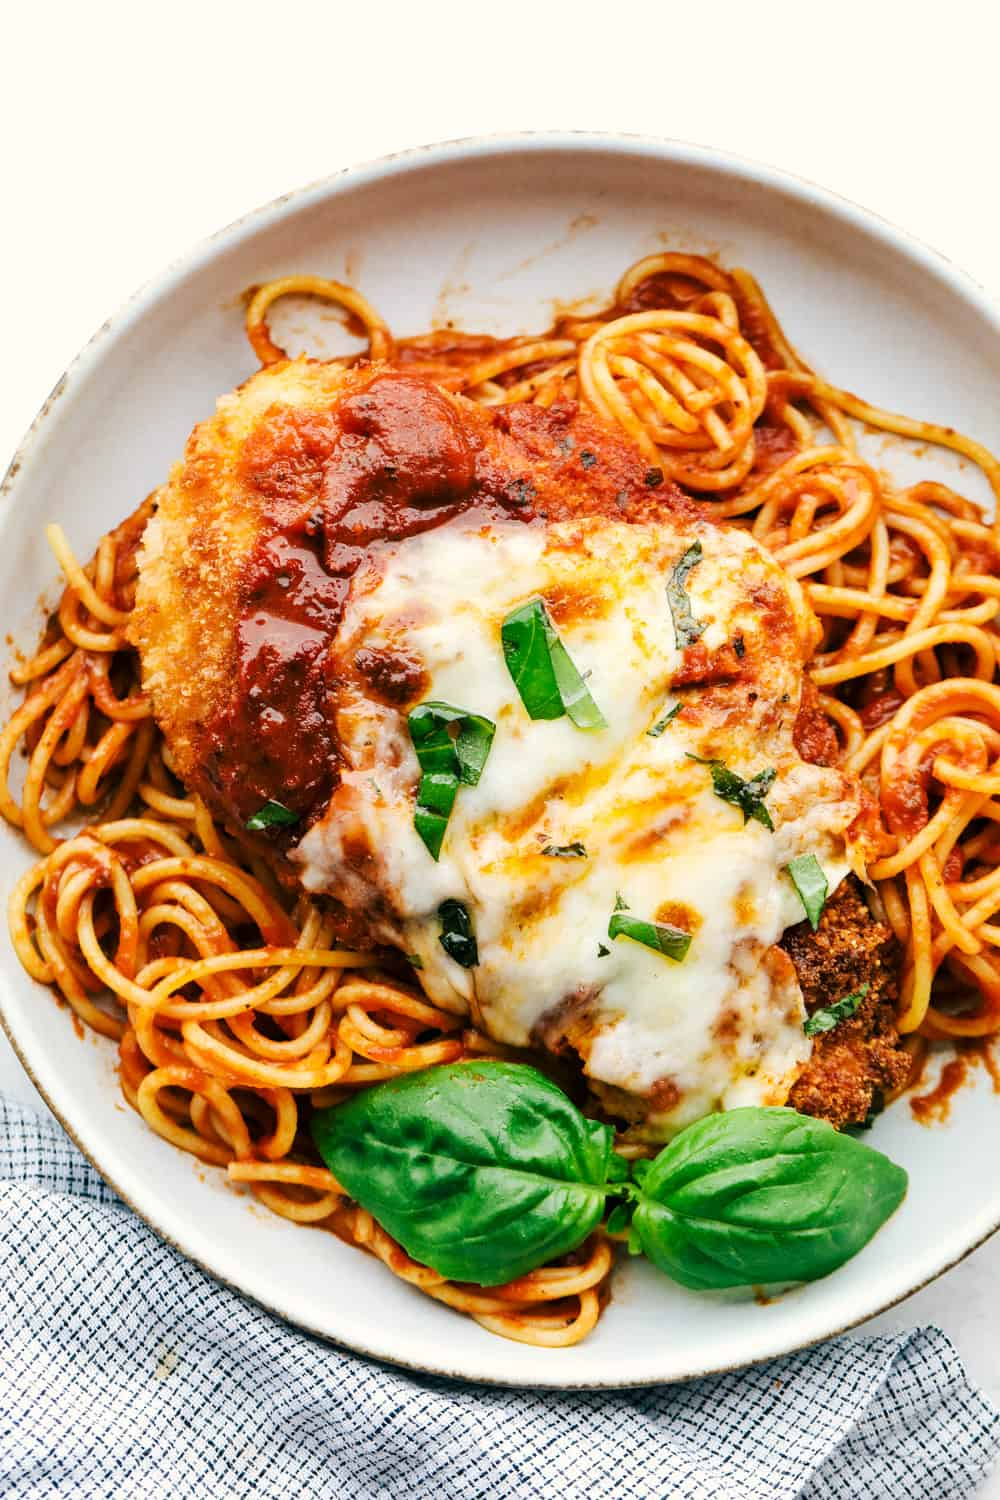 Parmesan chicken on a bed of spaghetti with marinara sauce.